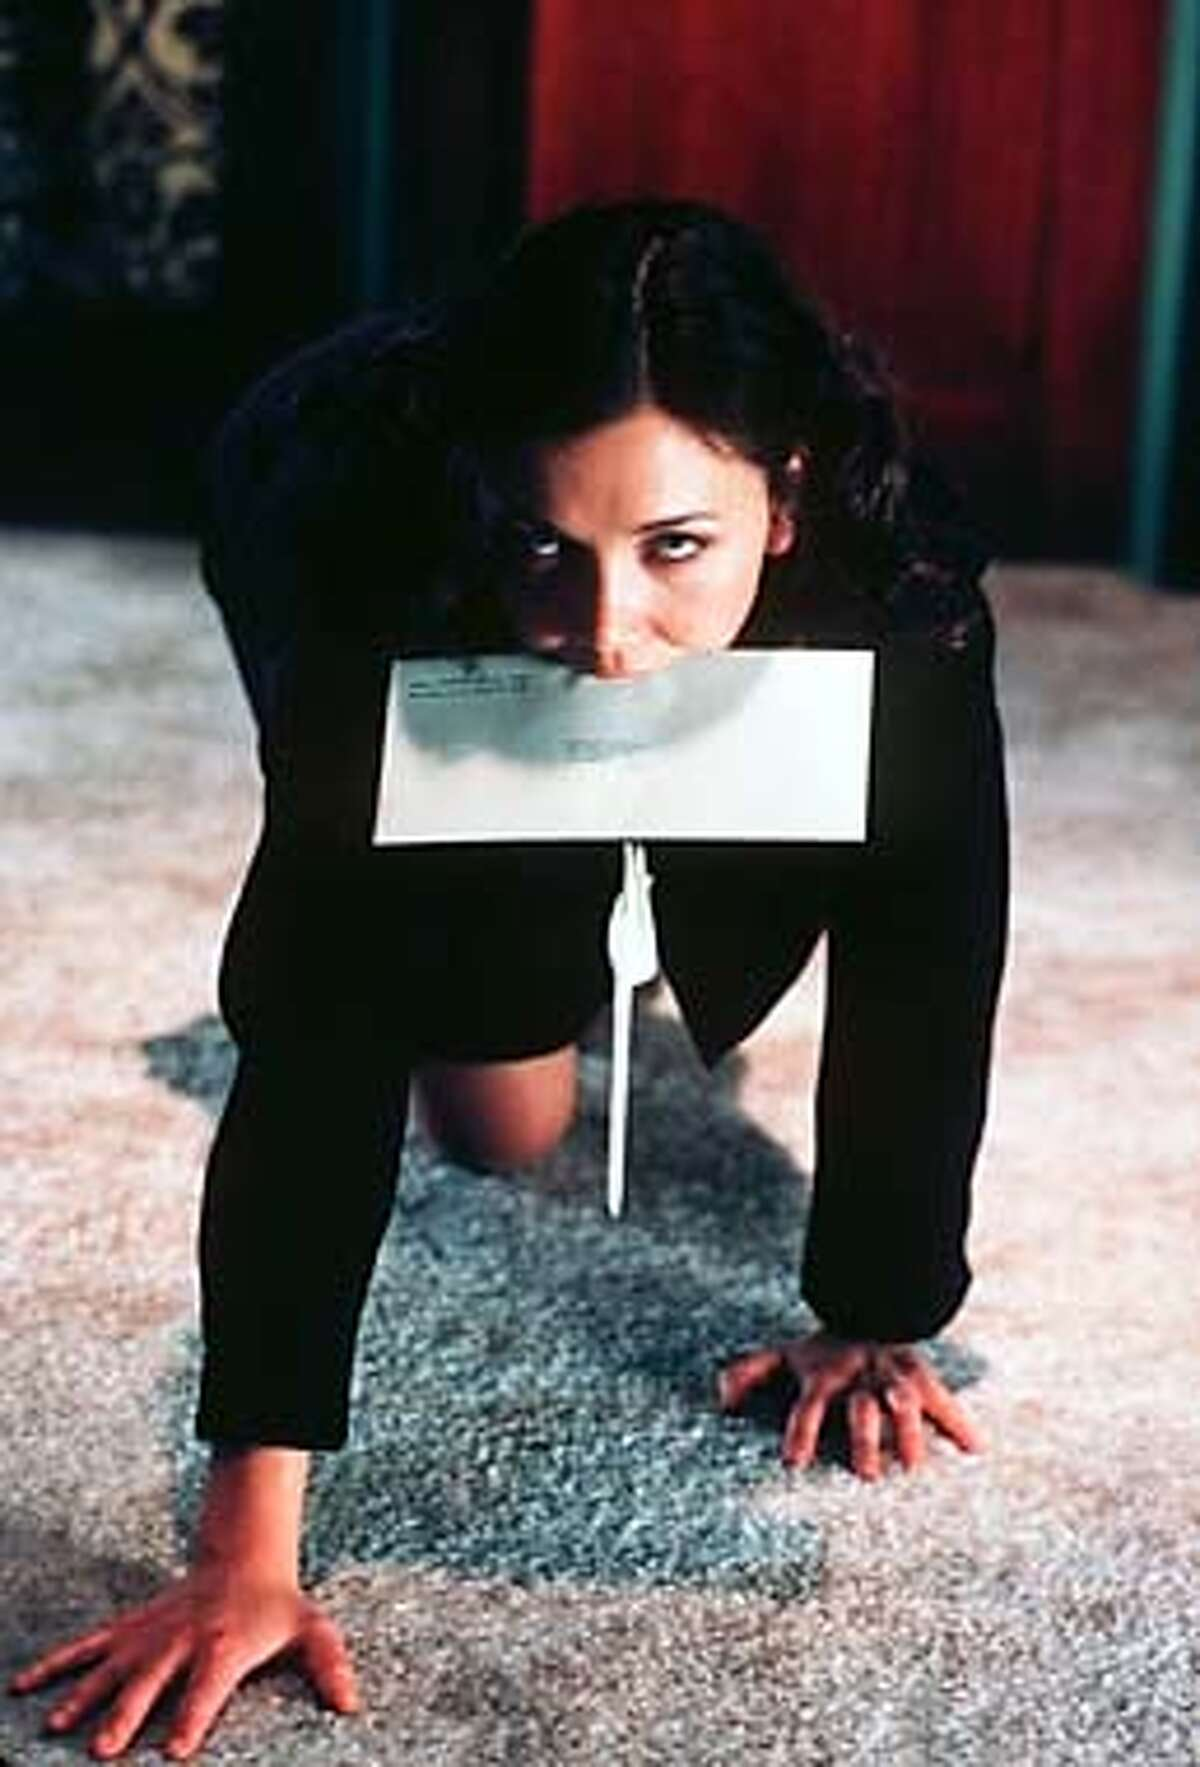 You're the boss: Maggie Gyllenhaal in